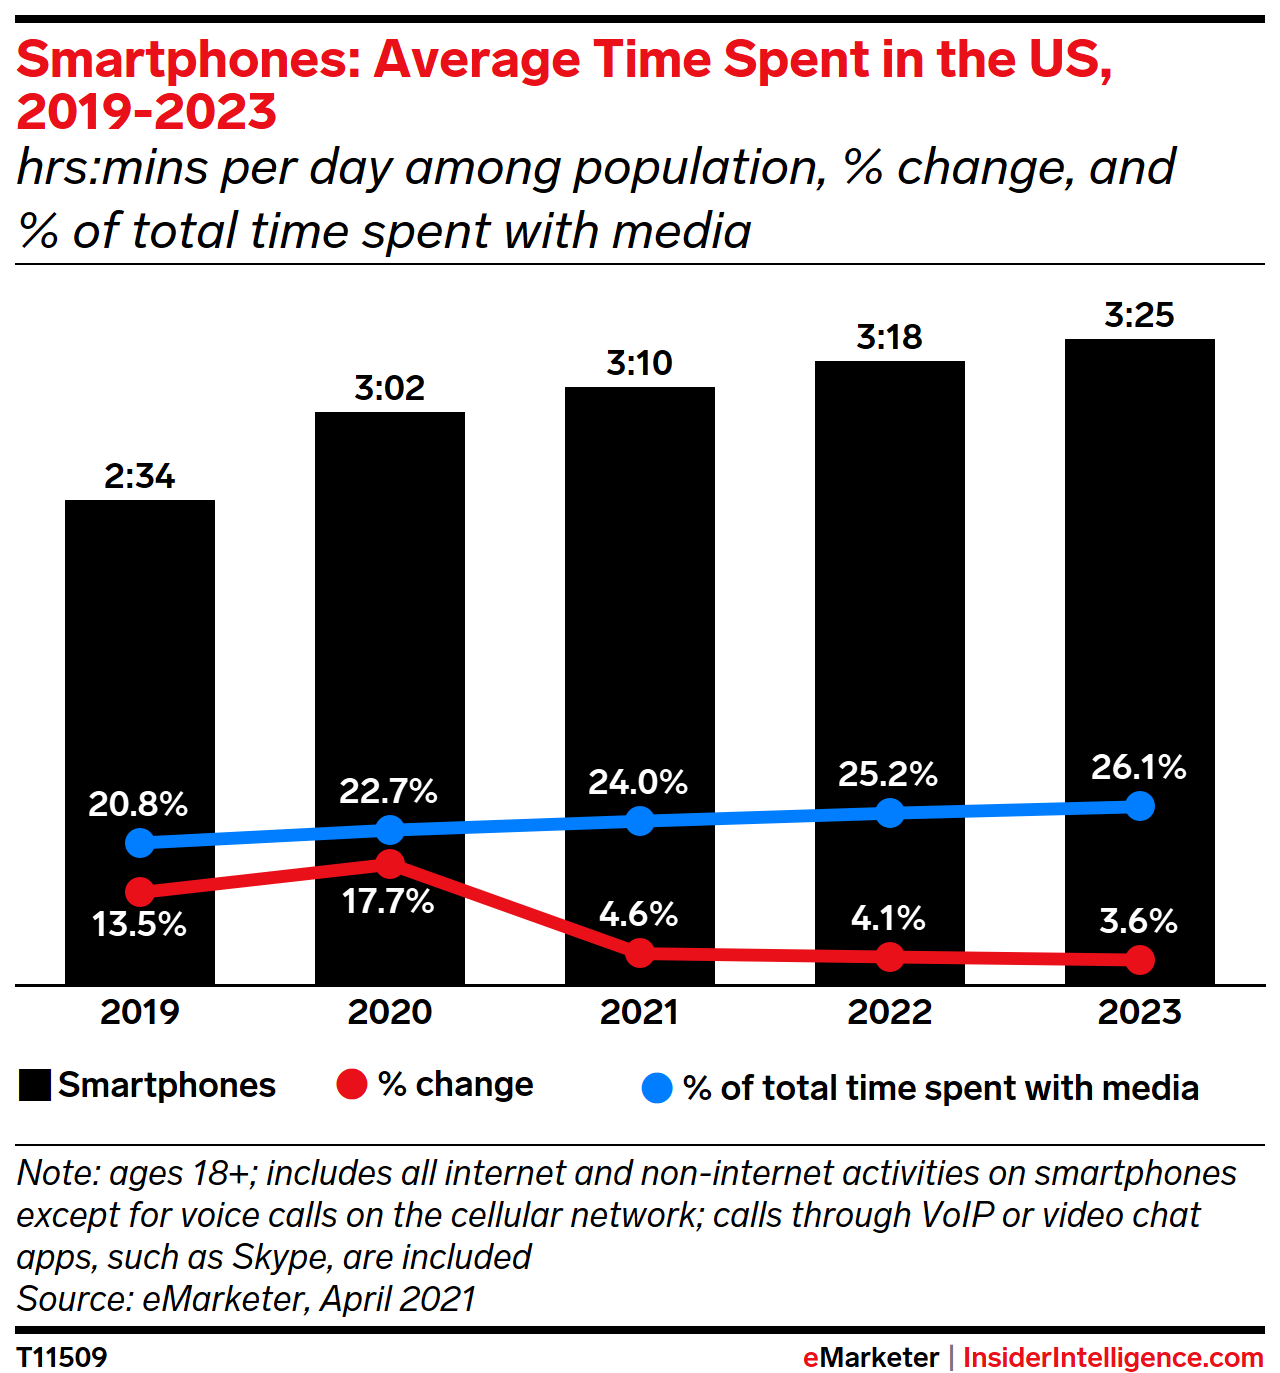 Smartphones: Average Time Spent with Media in the US, 2019-2023 (hrs:mins per day among population, % change, and % of total time spent with media)